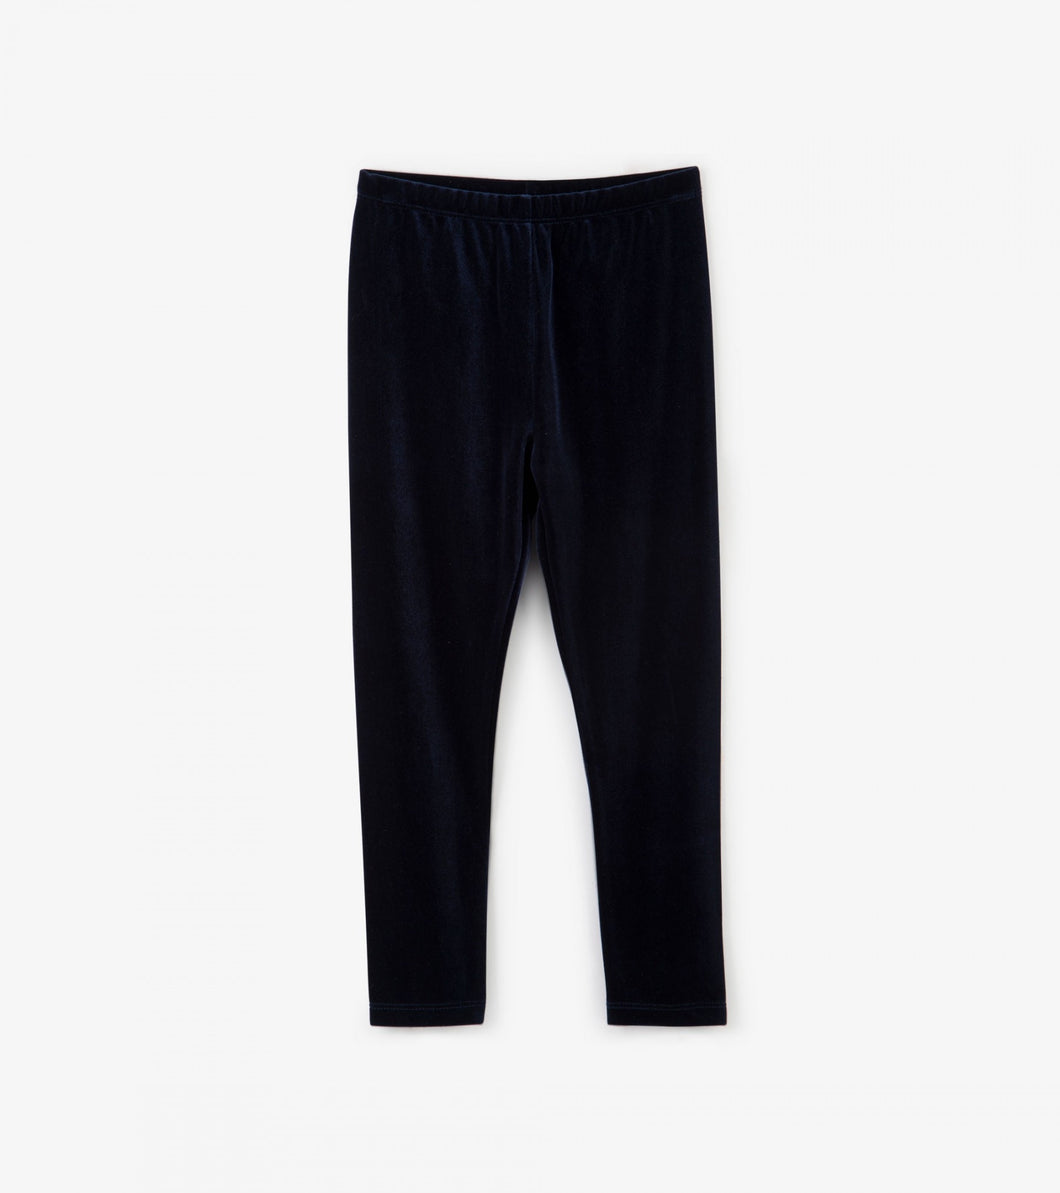 Hatley Navy Velour Leggings